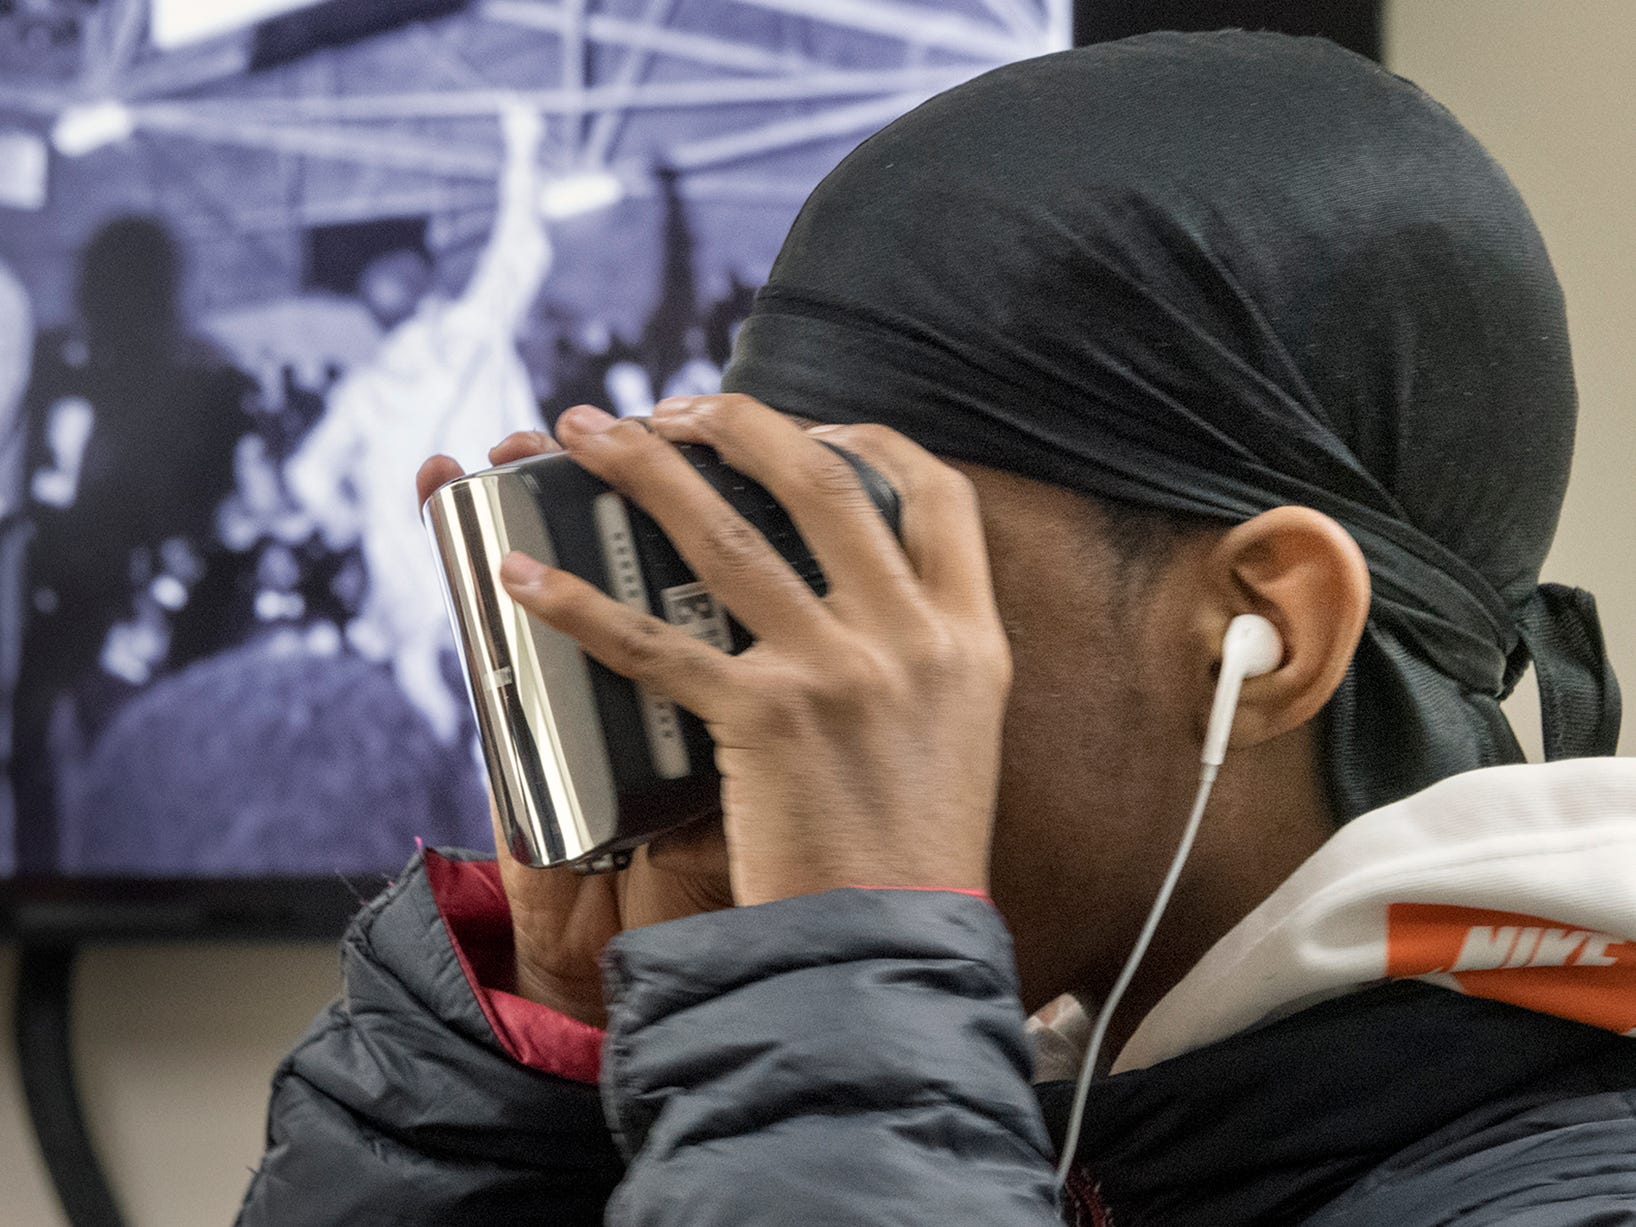 Jyasiere Brown watches a program about the life of Martin Luther King Jr. with virtual reality glasses at the 37th Annual MLK Day of Service at the Crispus Attucks Community Association in York, PA.